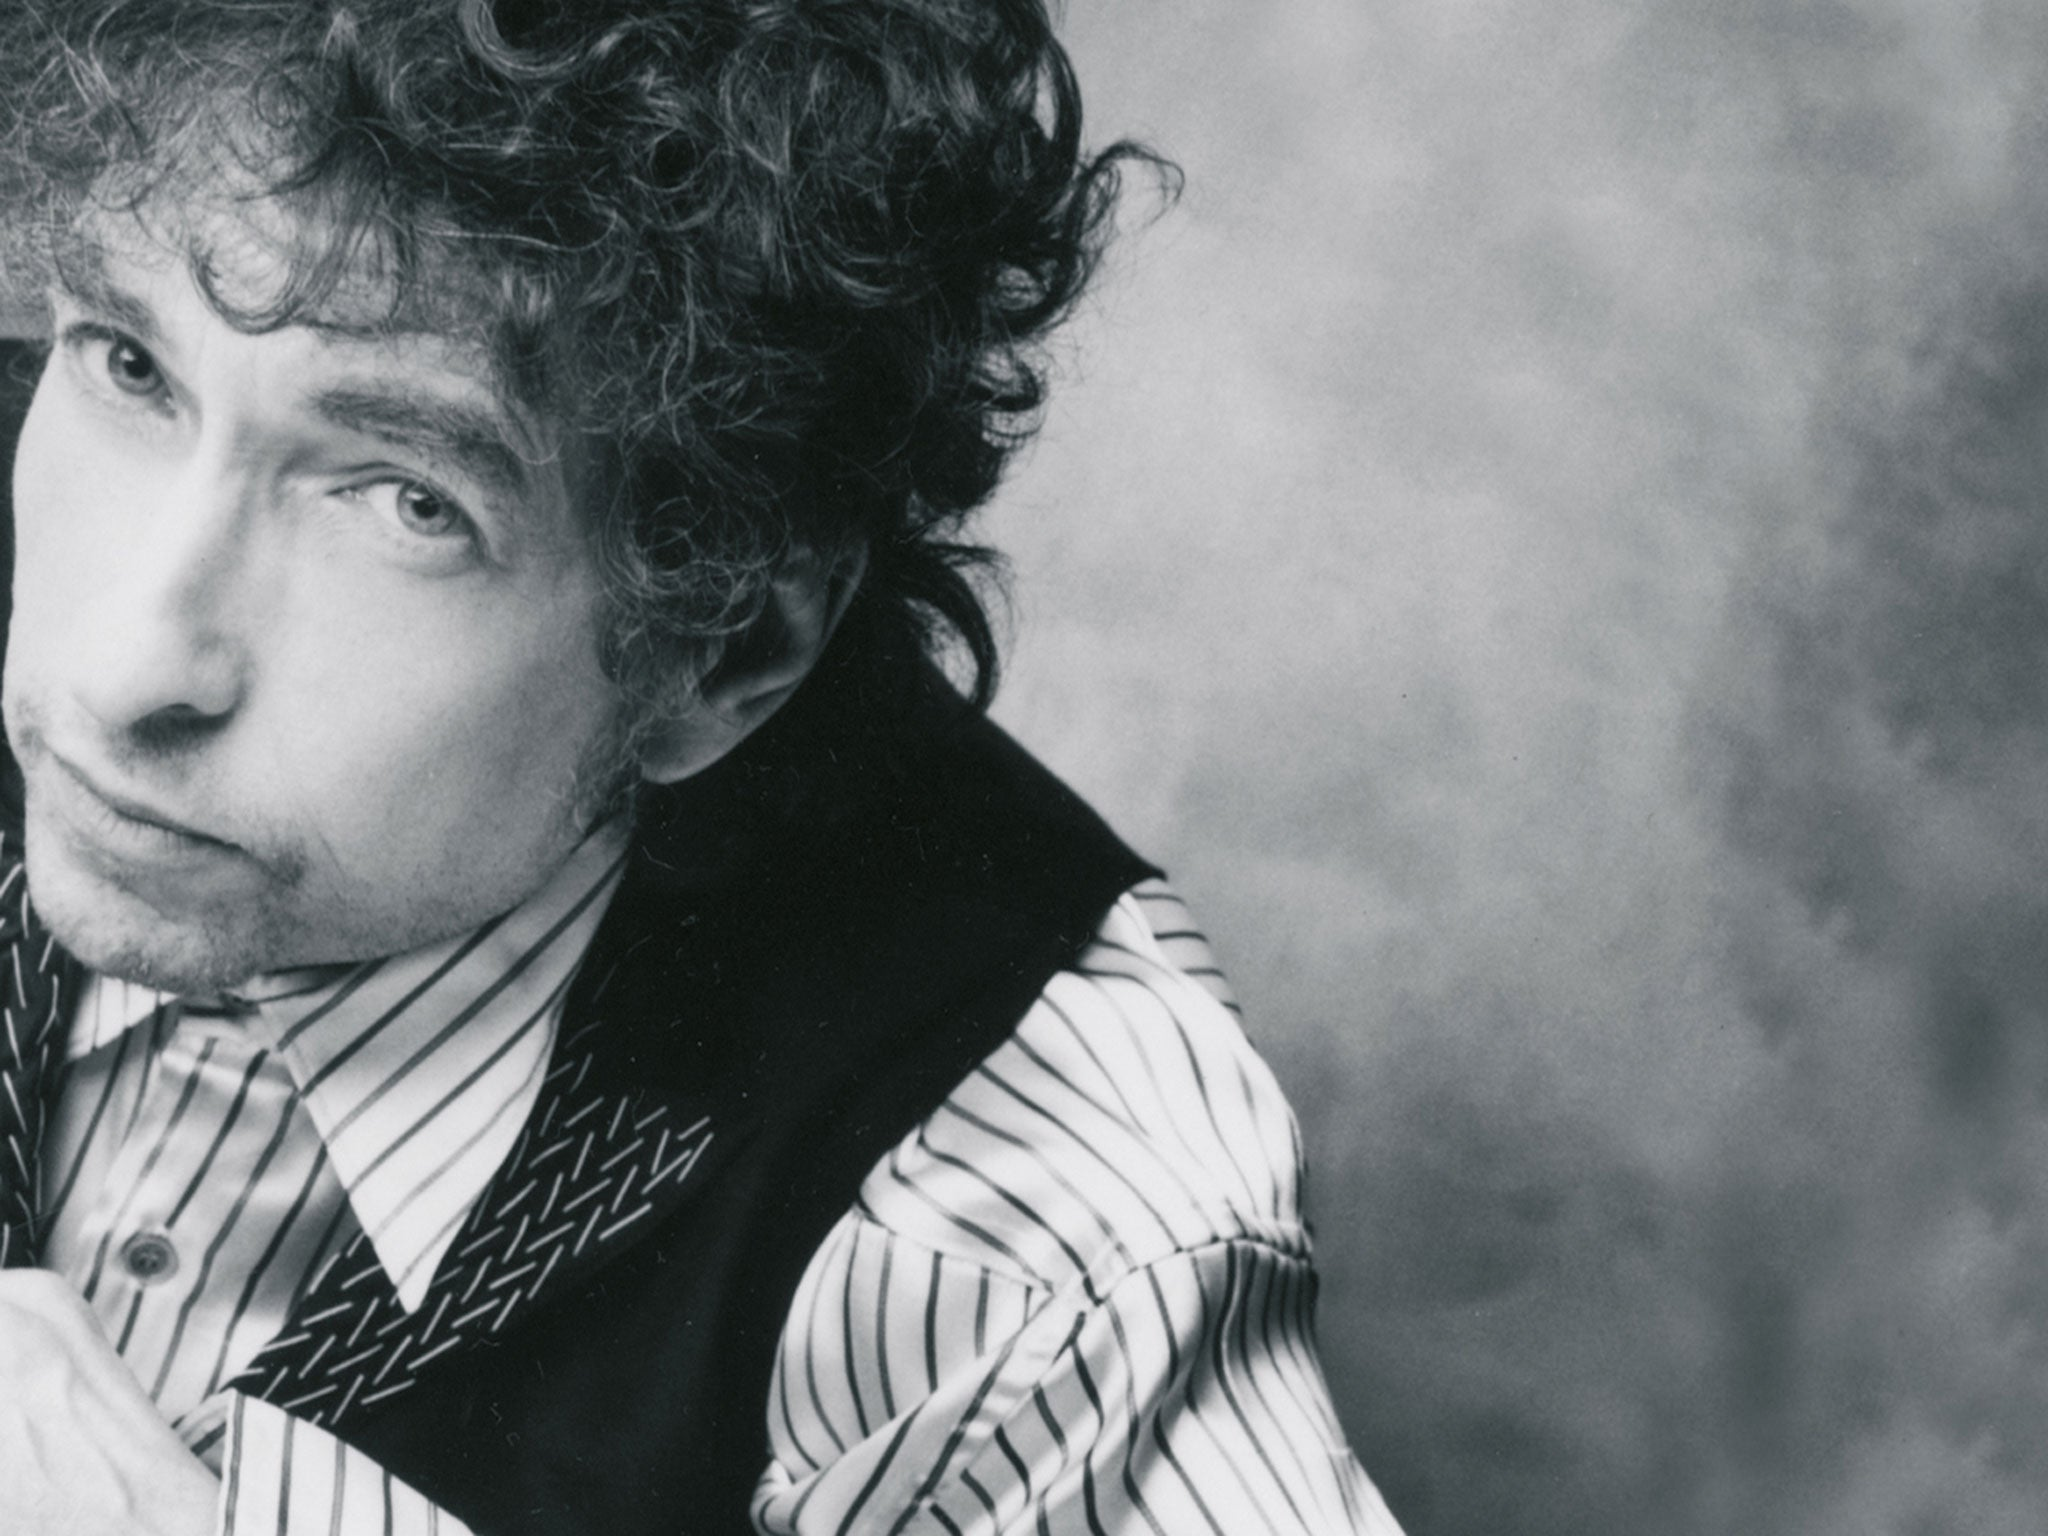 Bob dylan wins the nobel prize for literature 2016 the for The dylan